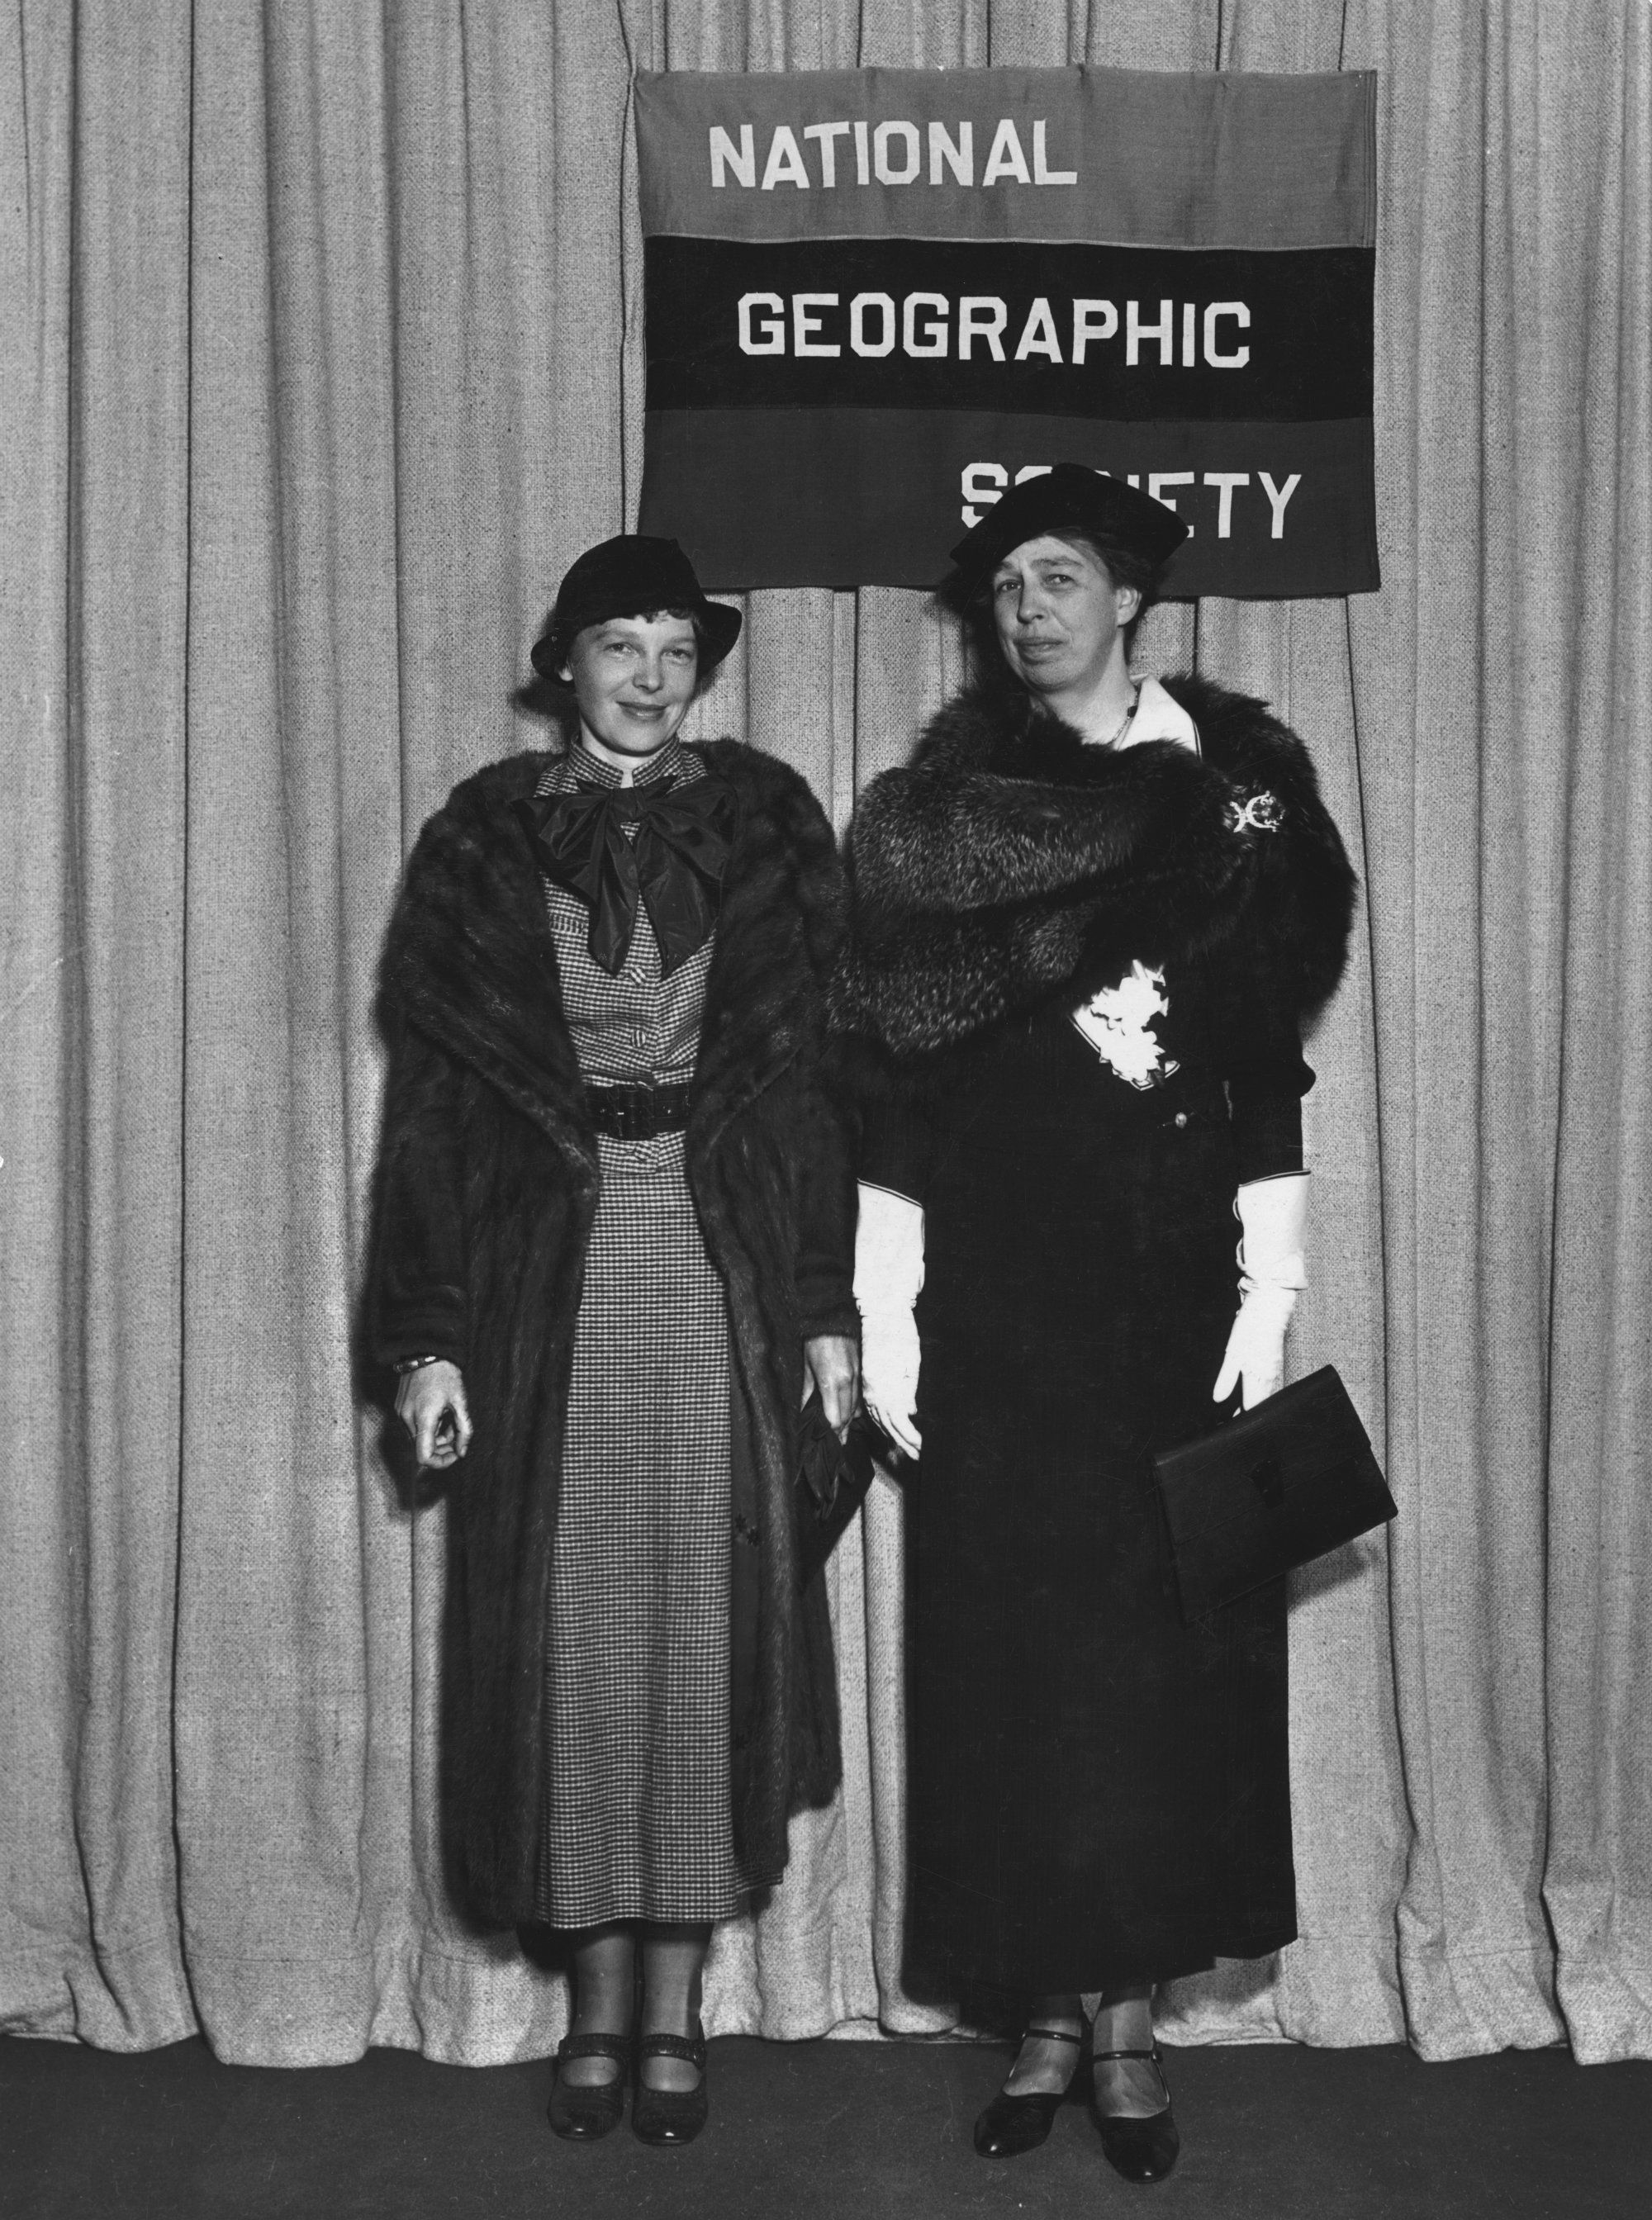 franklin and eleanor roosevelt us presidents lady amelia earhart and first lady eleanor roosevelt national geographic s offices in washington dc 1935